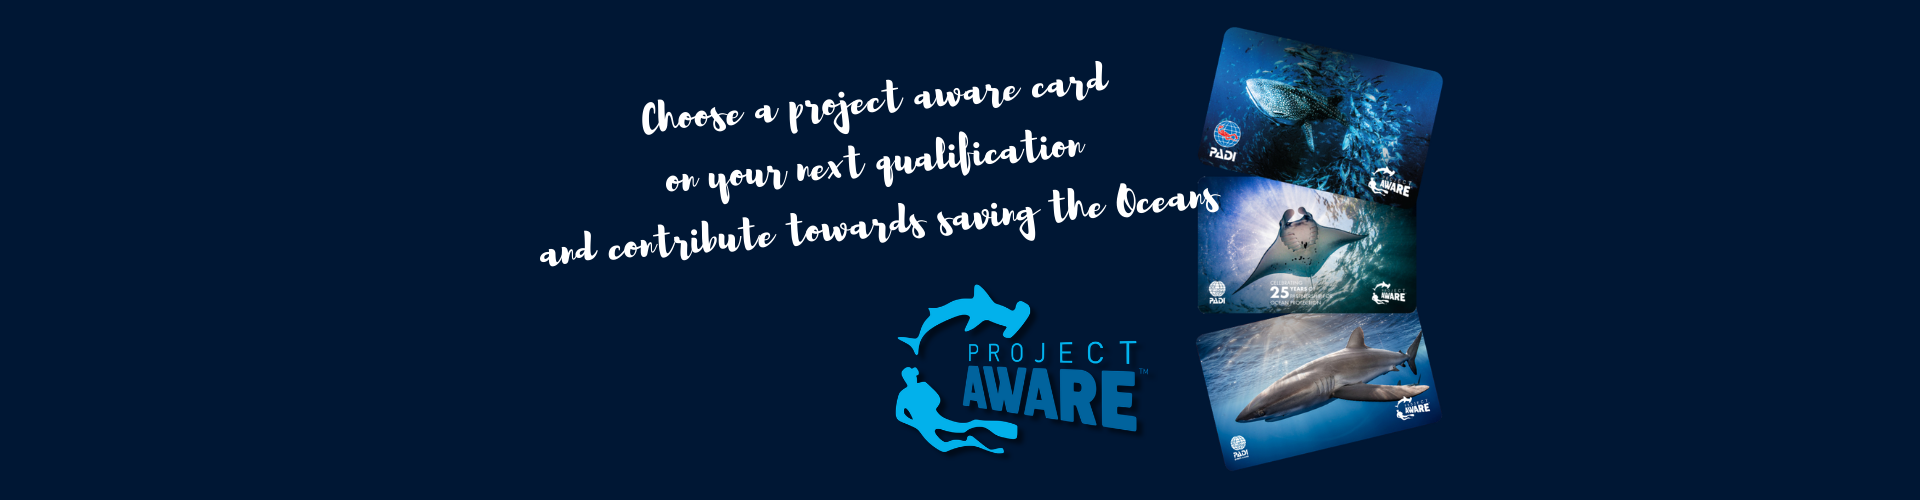 Project aware Cards